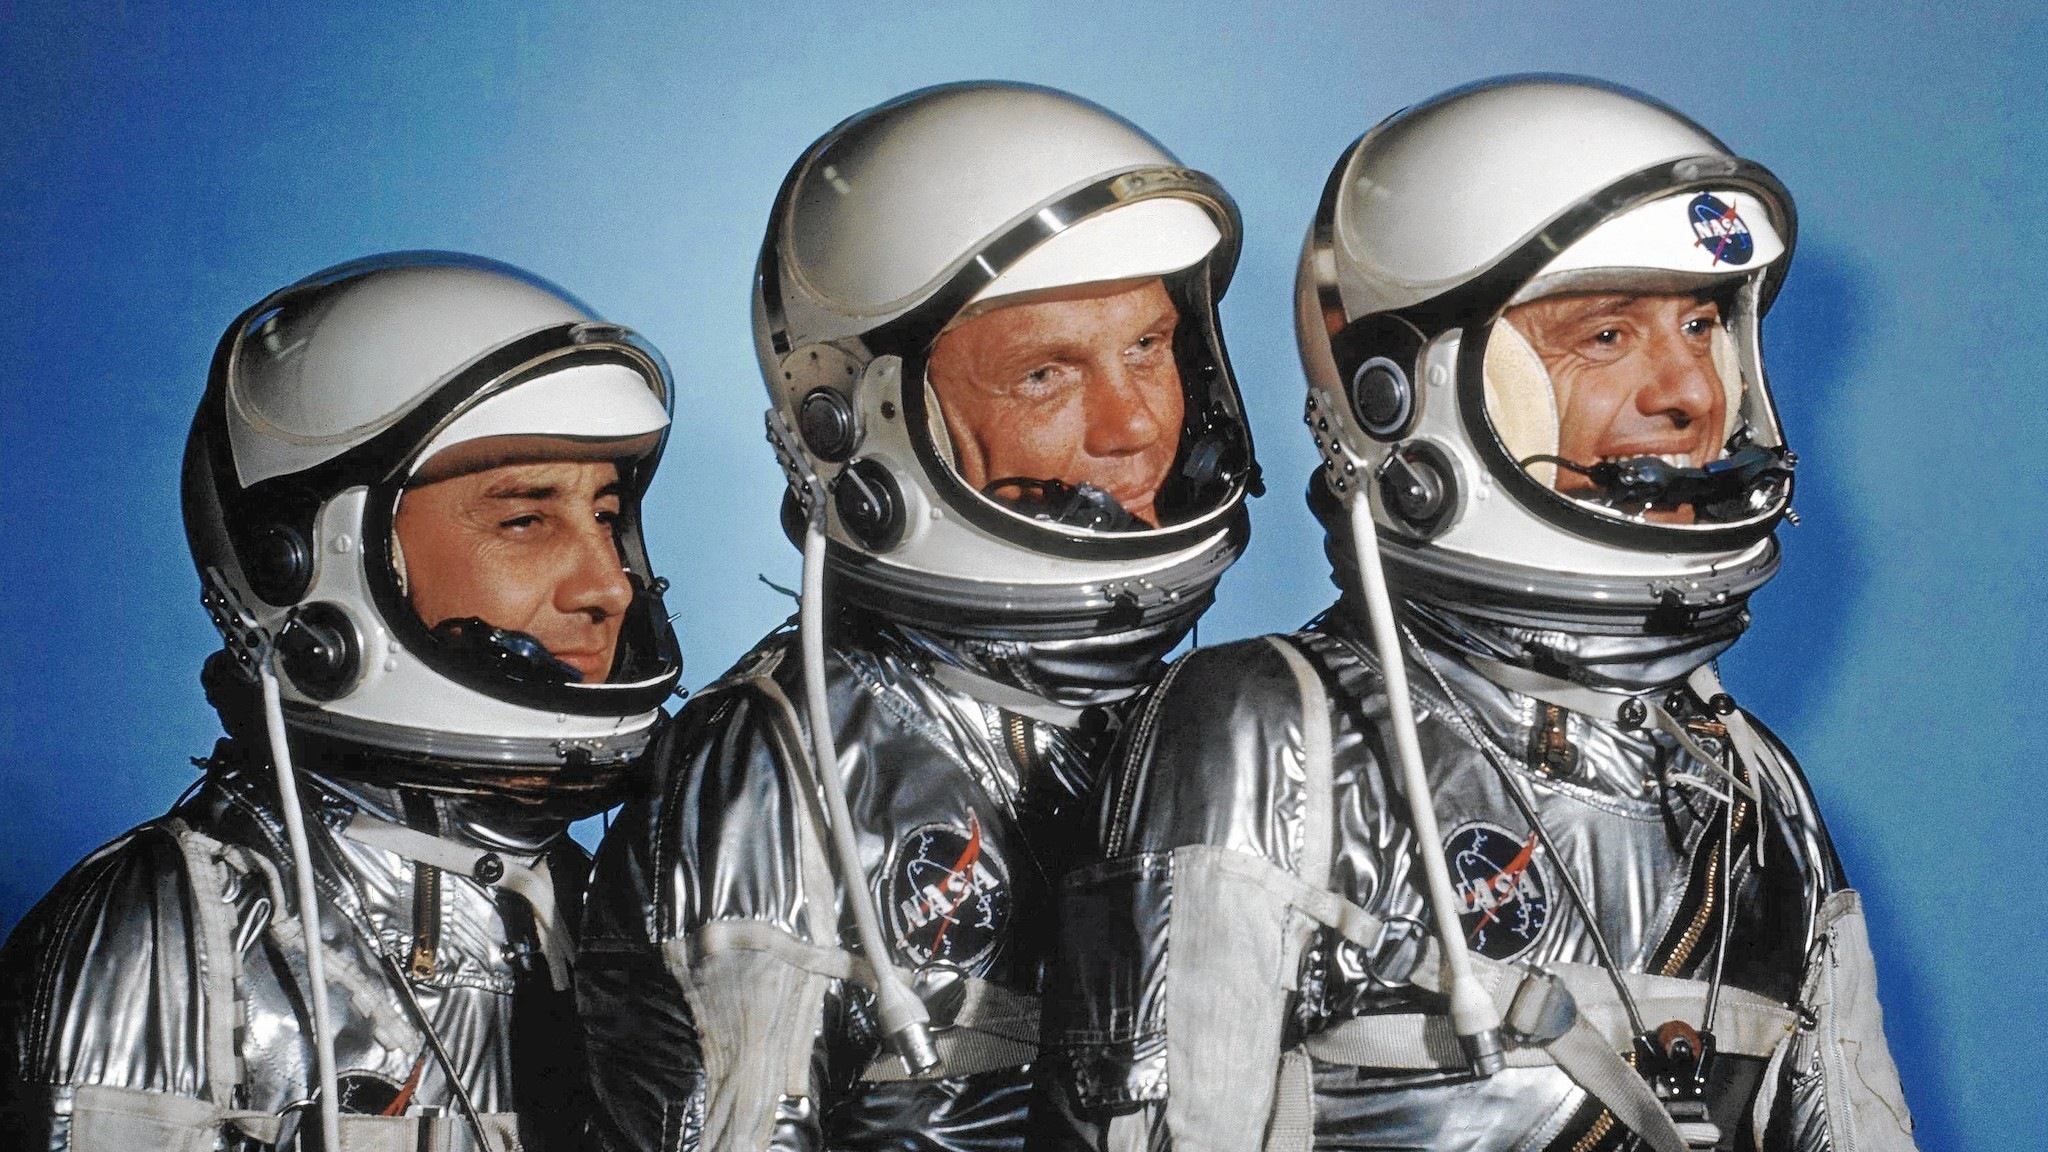 When the heroes were astronauts - Chicago Tribune